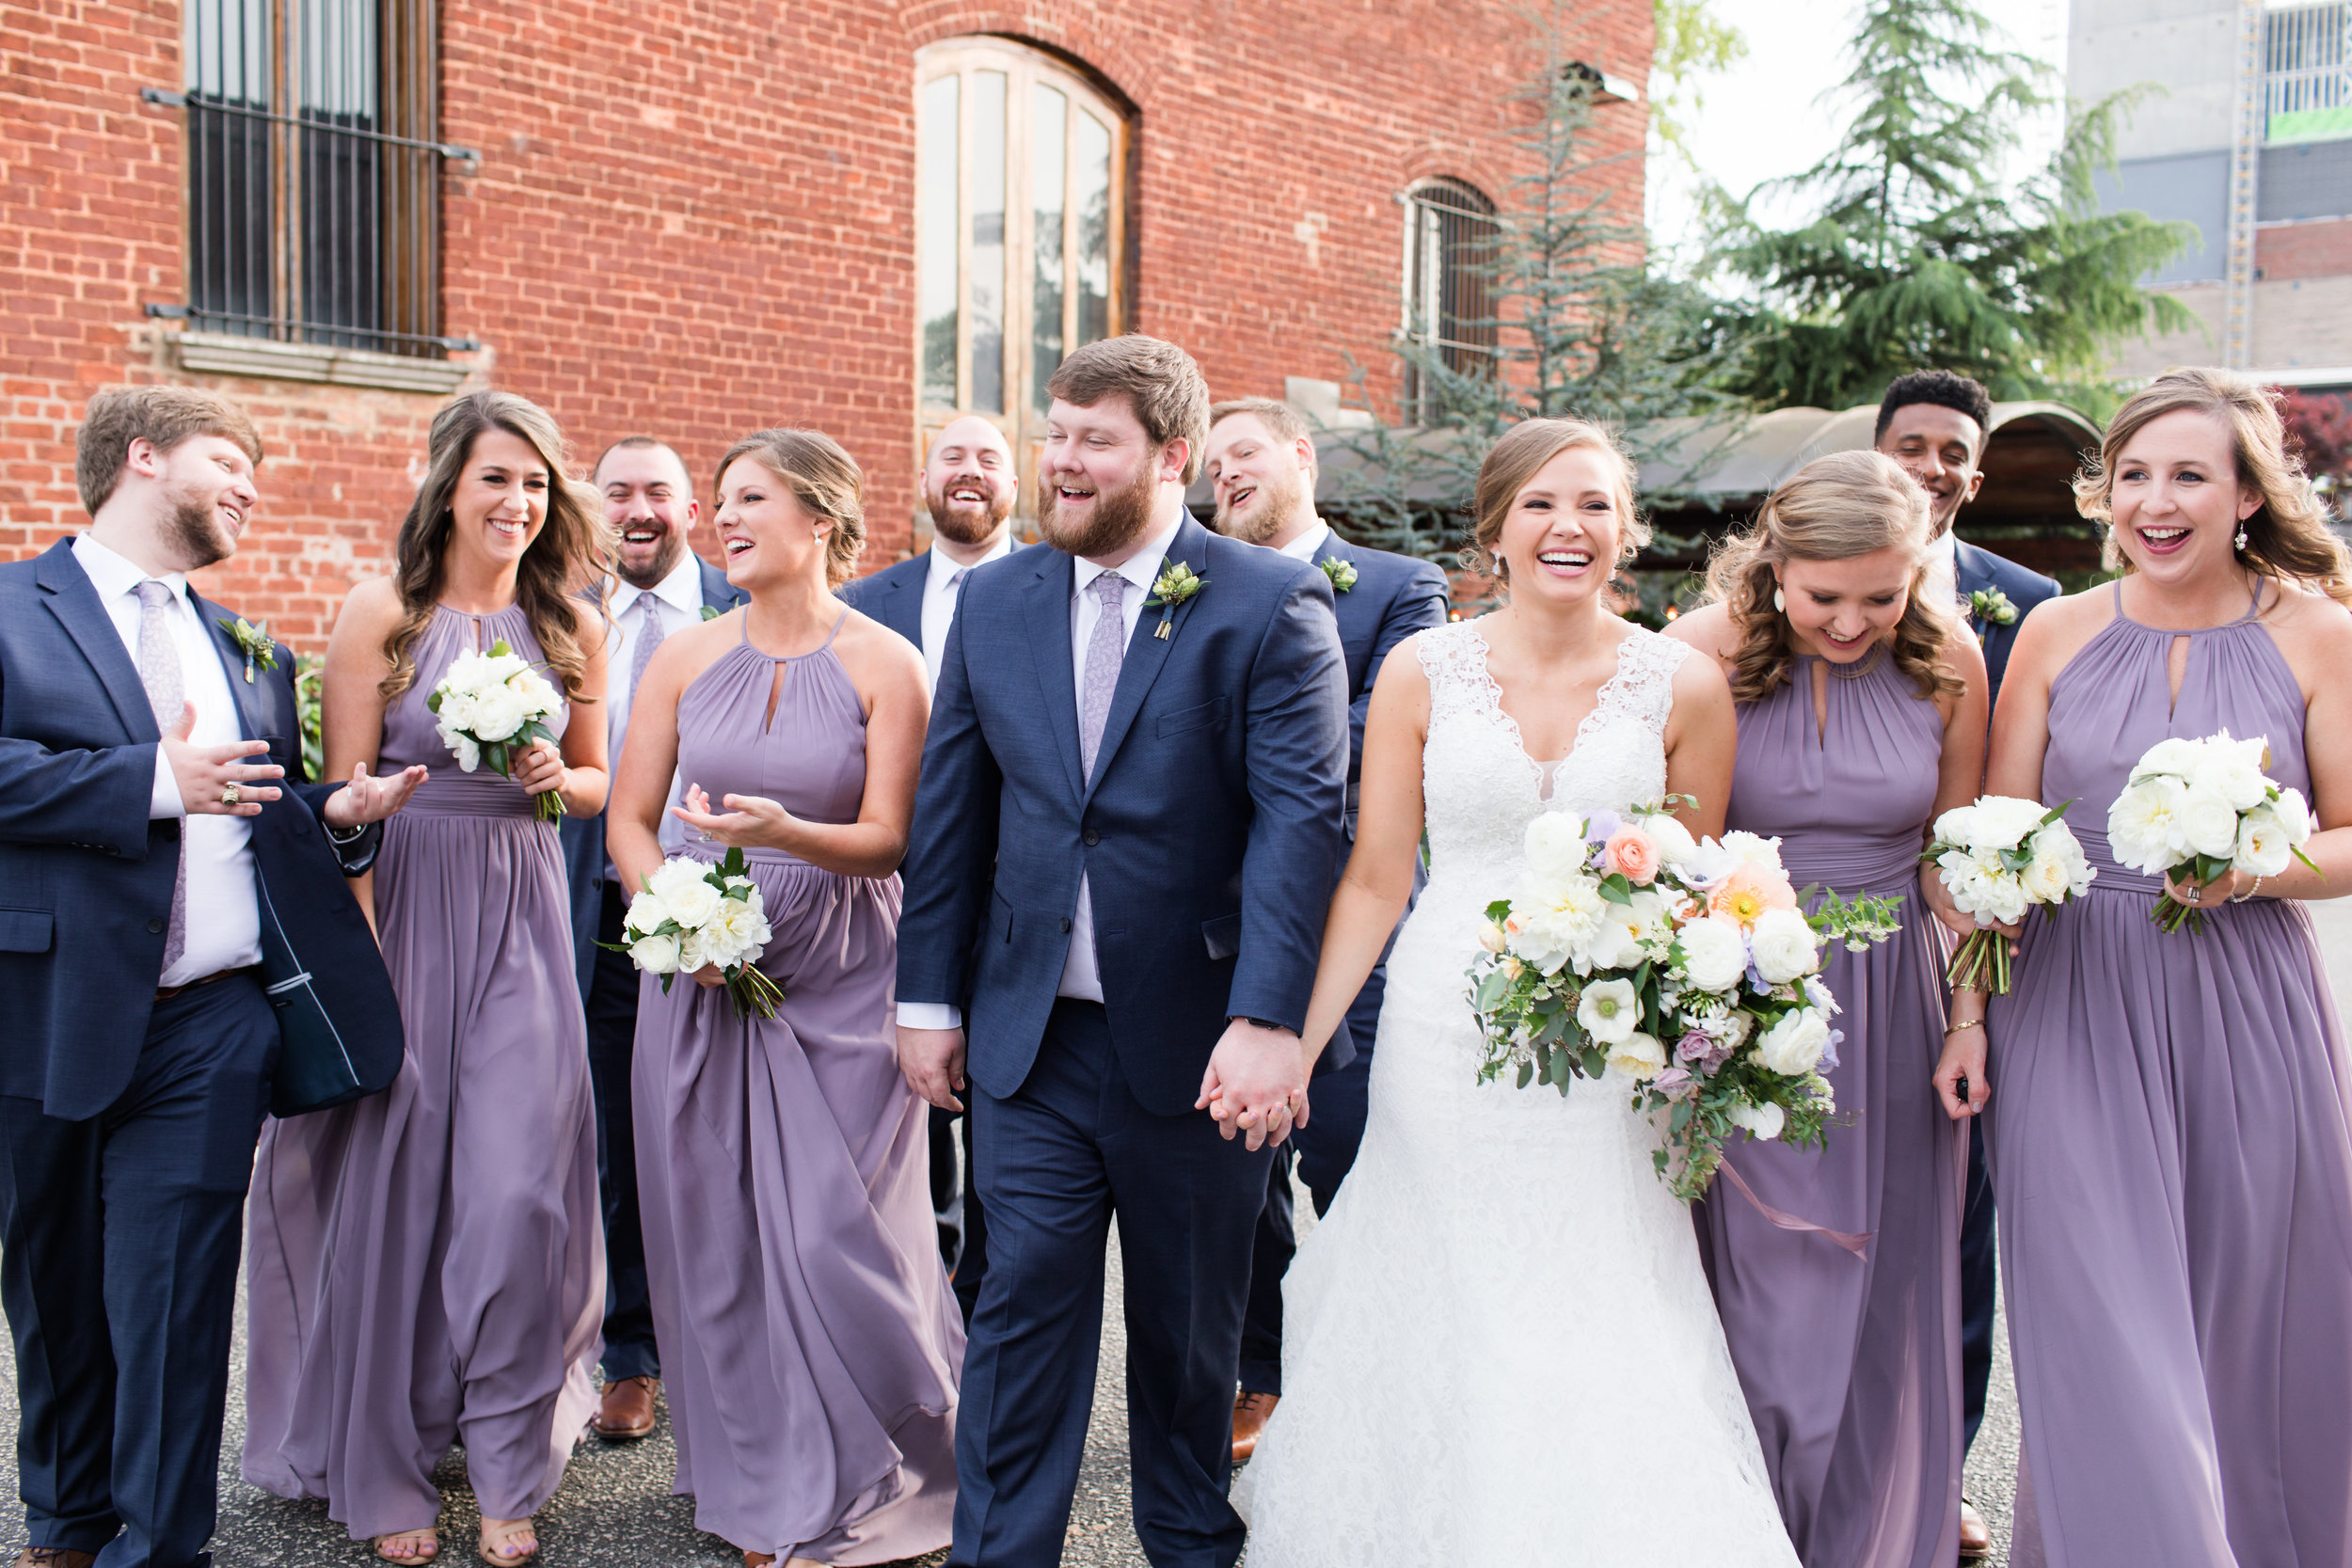 Wedding-DJ-Greenville-SC-Old Cigar-Warehouse-Megan-and-Ben88.jpg